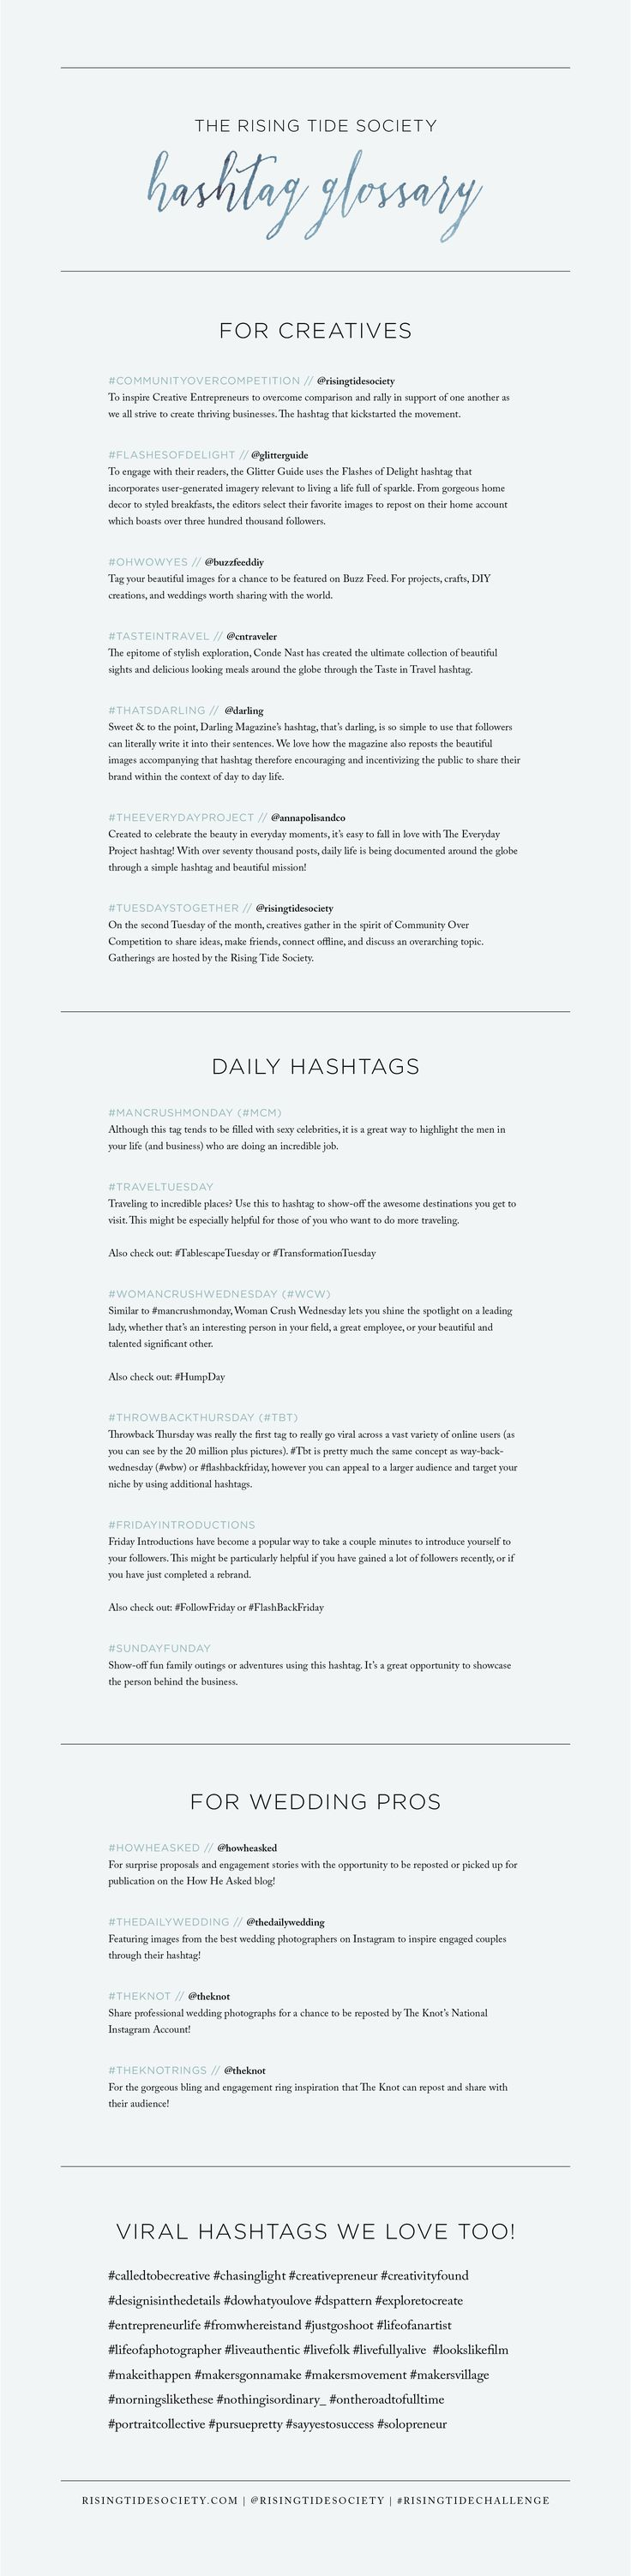 The Best Instagram Hashtags for Creative Entrepreneurs via The Rising Tide Society // #marketing #entrepreneurs #photographers